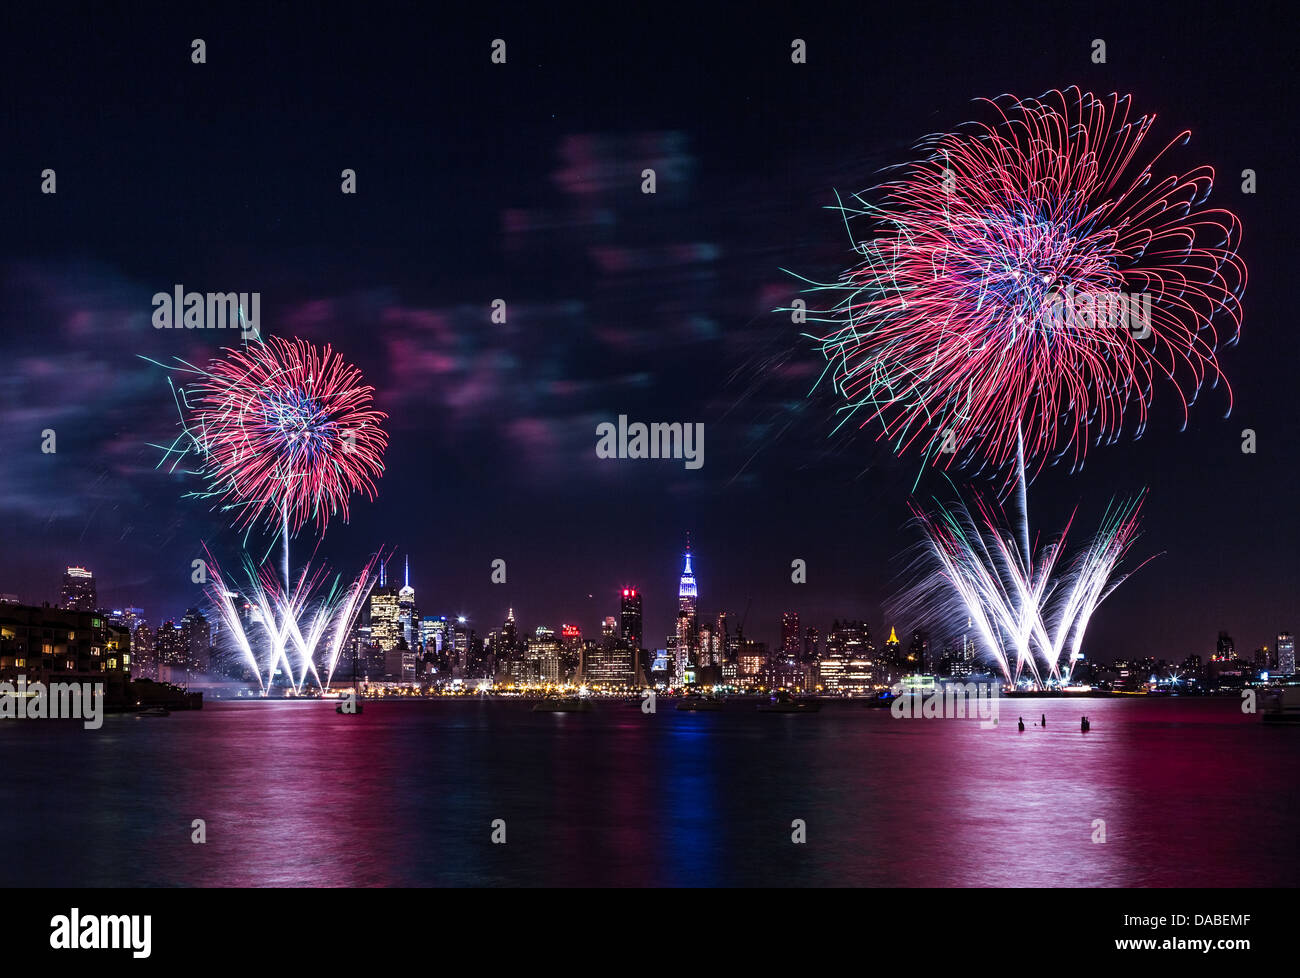 Macy's 4th of July fireworks on the Hudson river with the Manhattan skyline and the Empire State Building in the Stock Photo